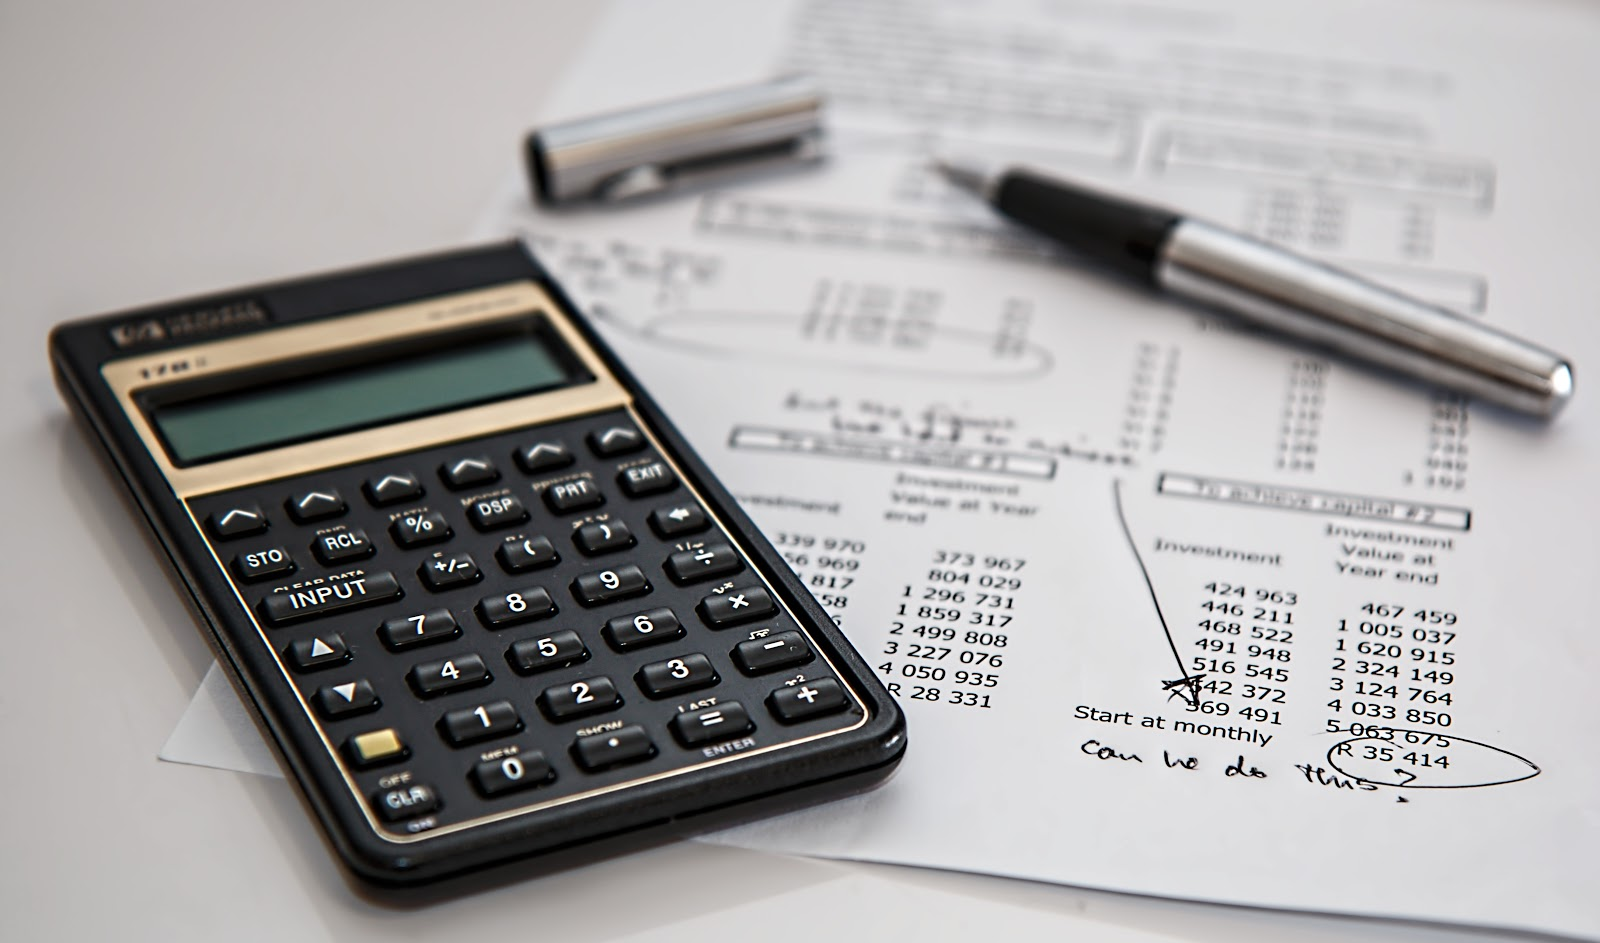 black-calculator-near-ballpoint-pen-on-white-printed-paper-detailing-finances